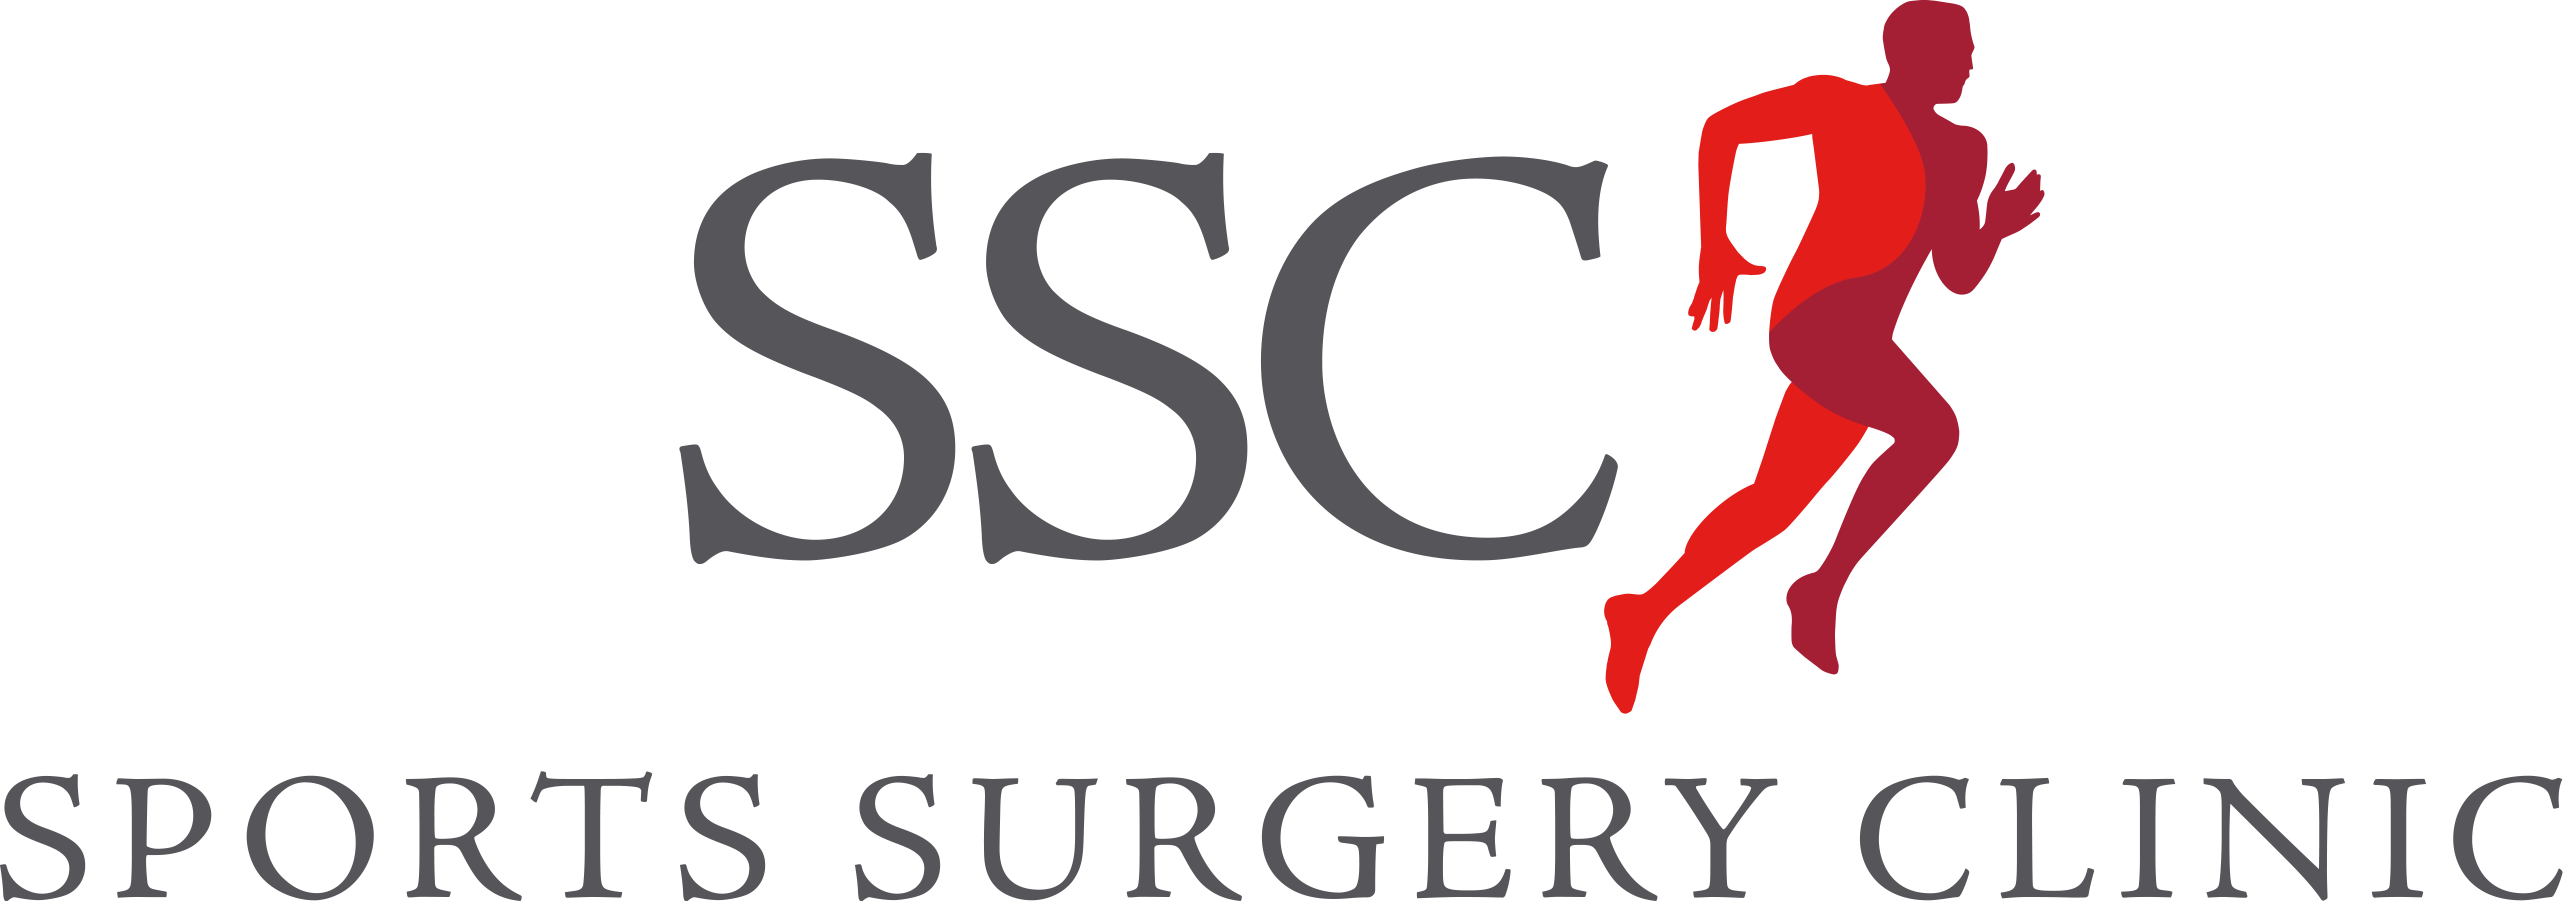 SSC Sports Surgery Clinic Security Systems